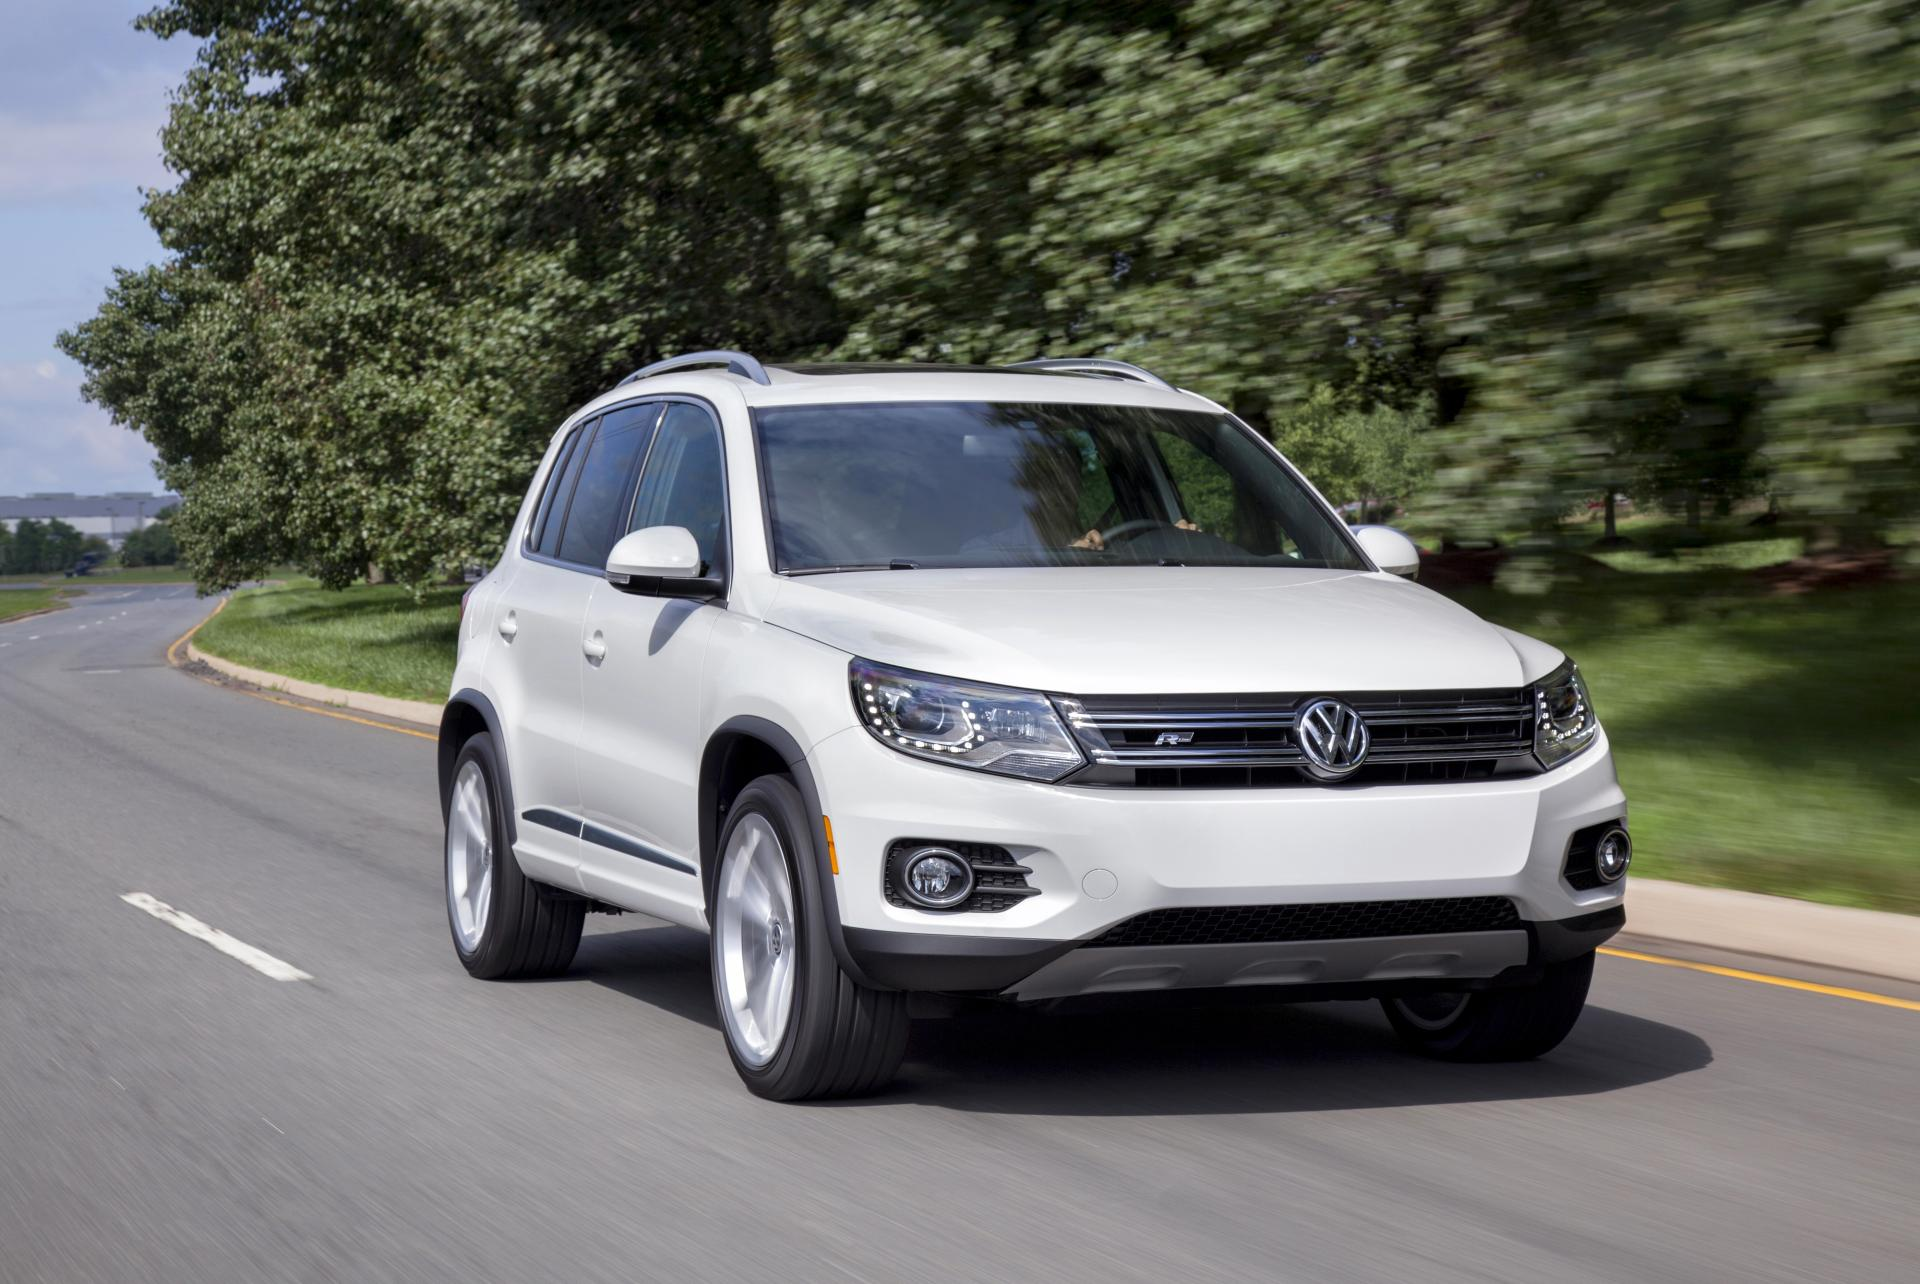 2014 volkswagen tiguan. Black Bedroom Furniture Sets. Home Design Ideas